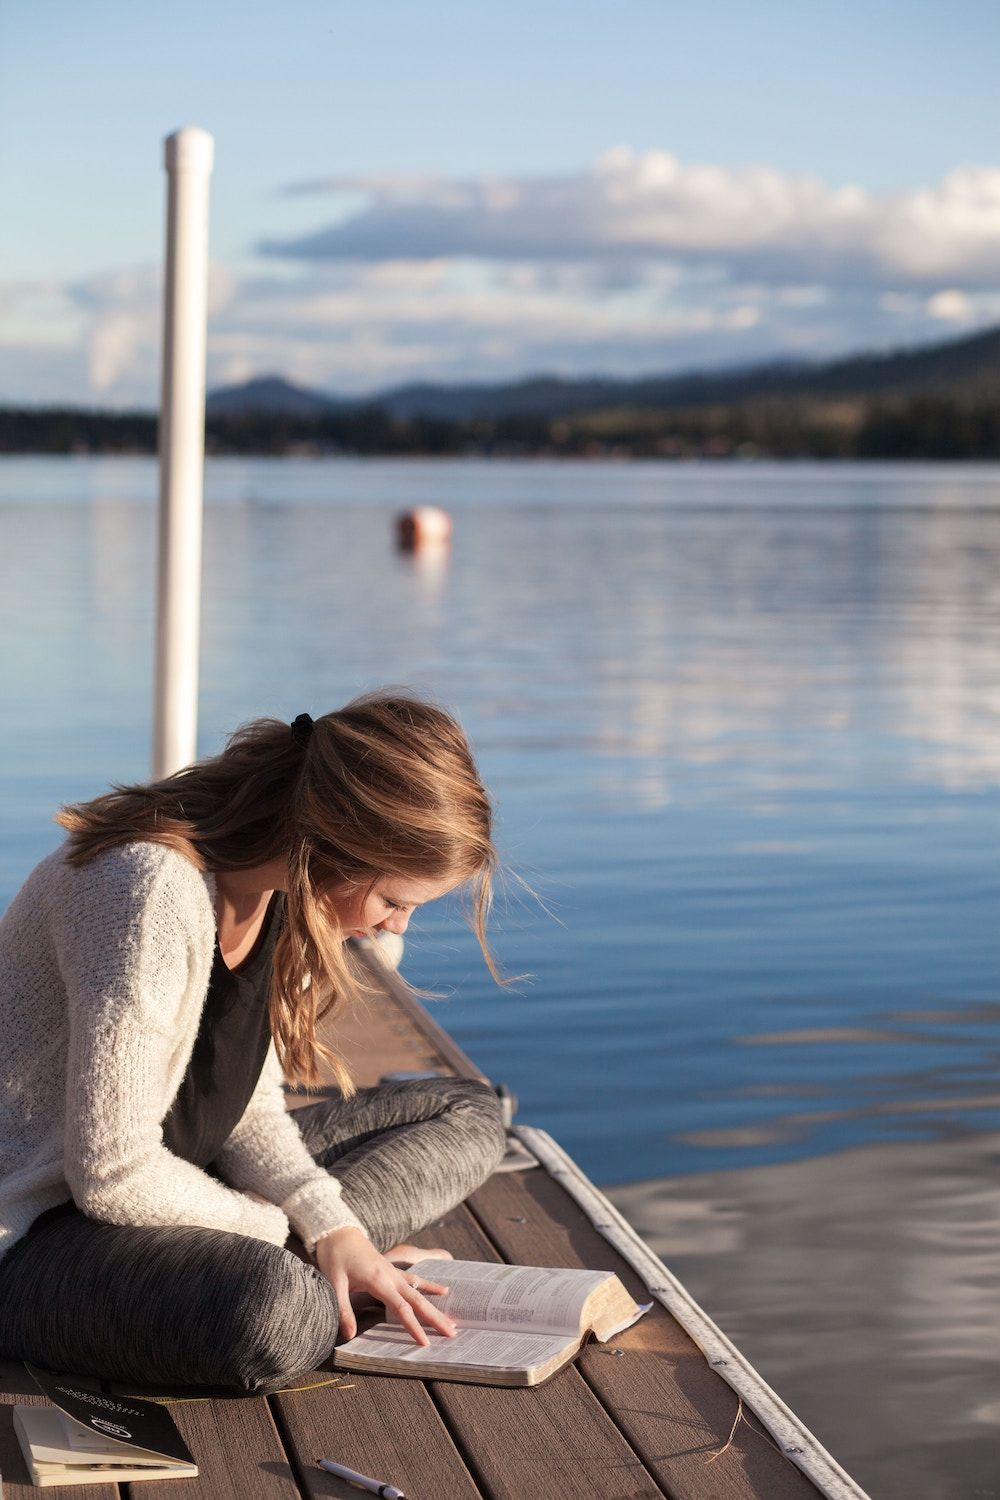 woman sitting outside by a lake reading a book